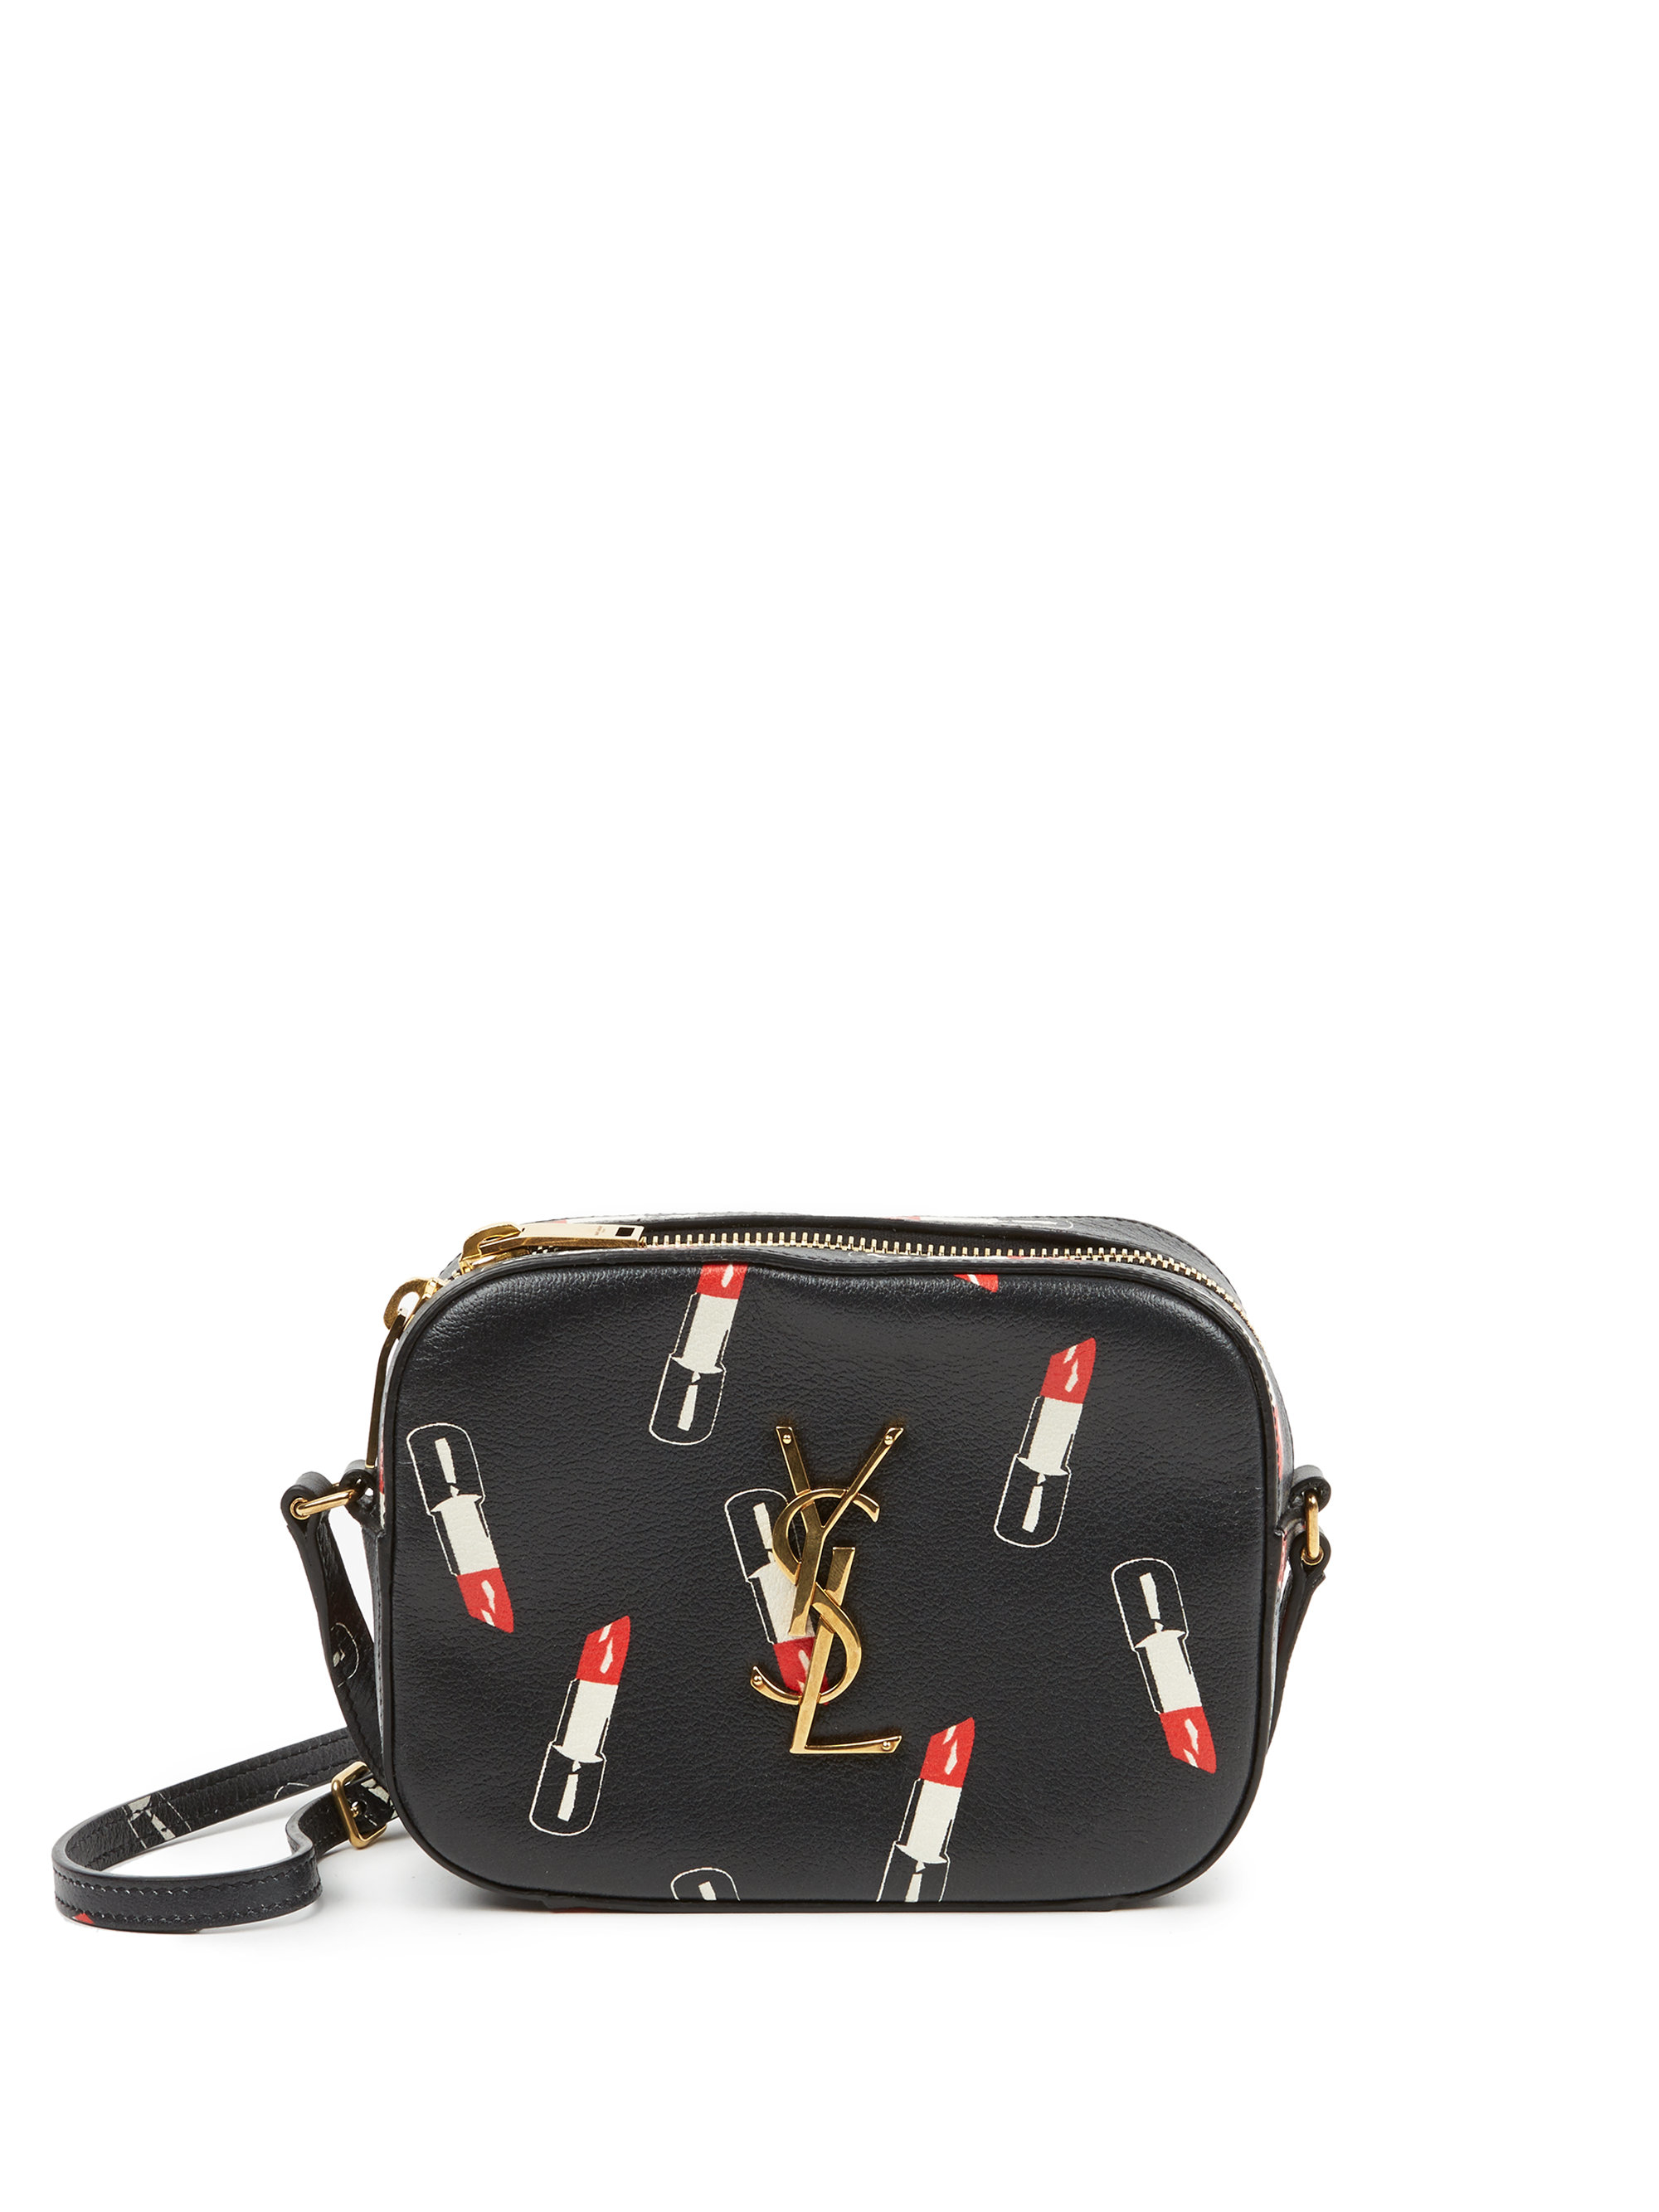 cabas chyc large leather tote - monogram lipstick-print leather pouch, black